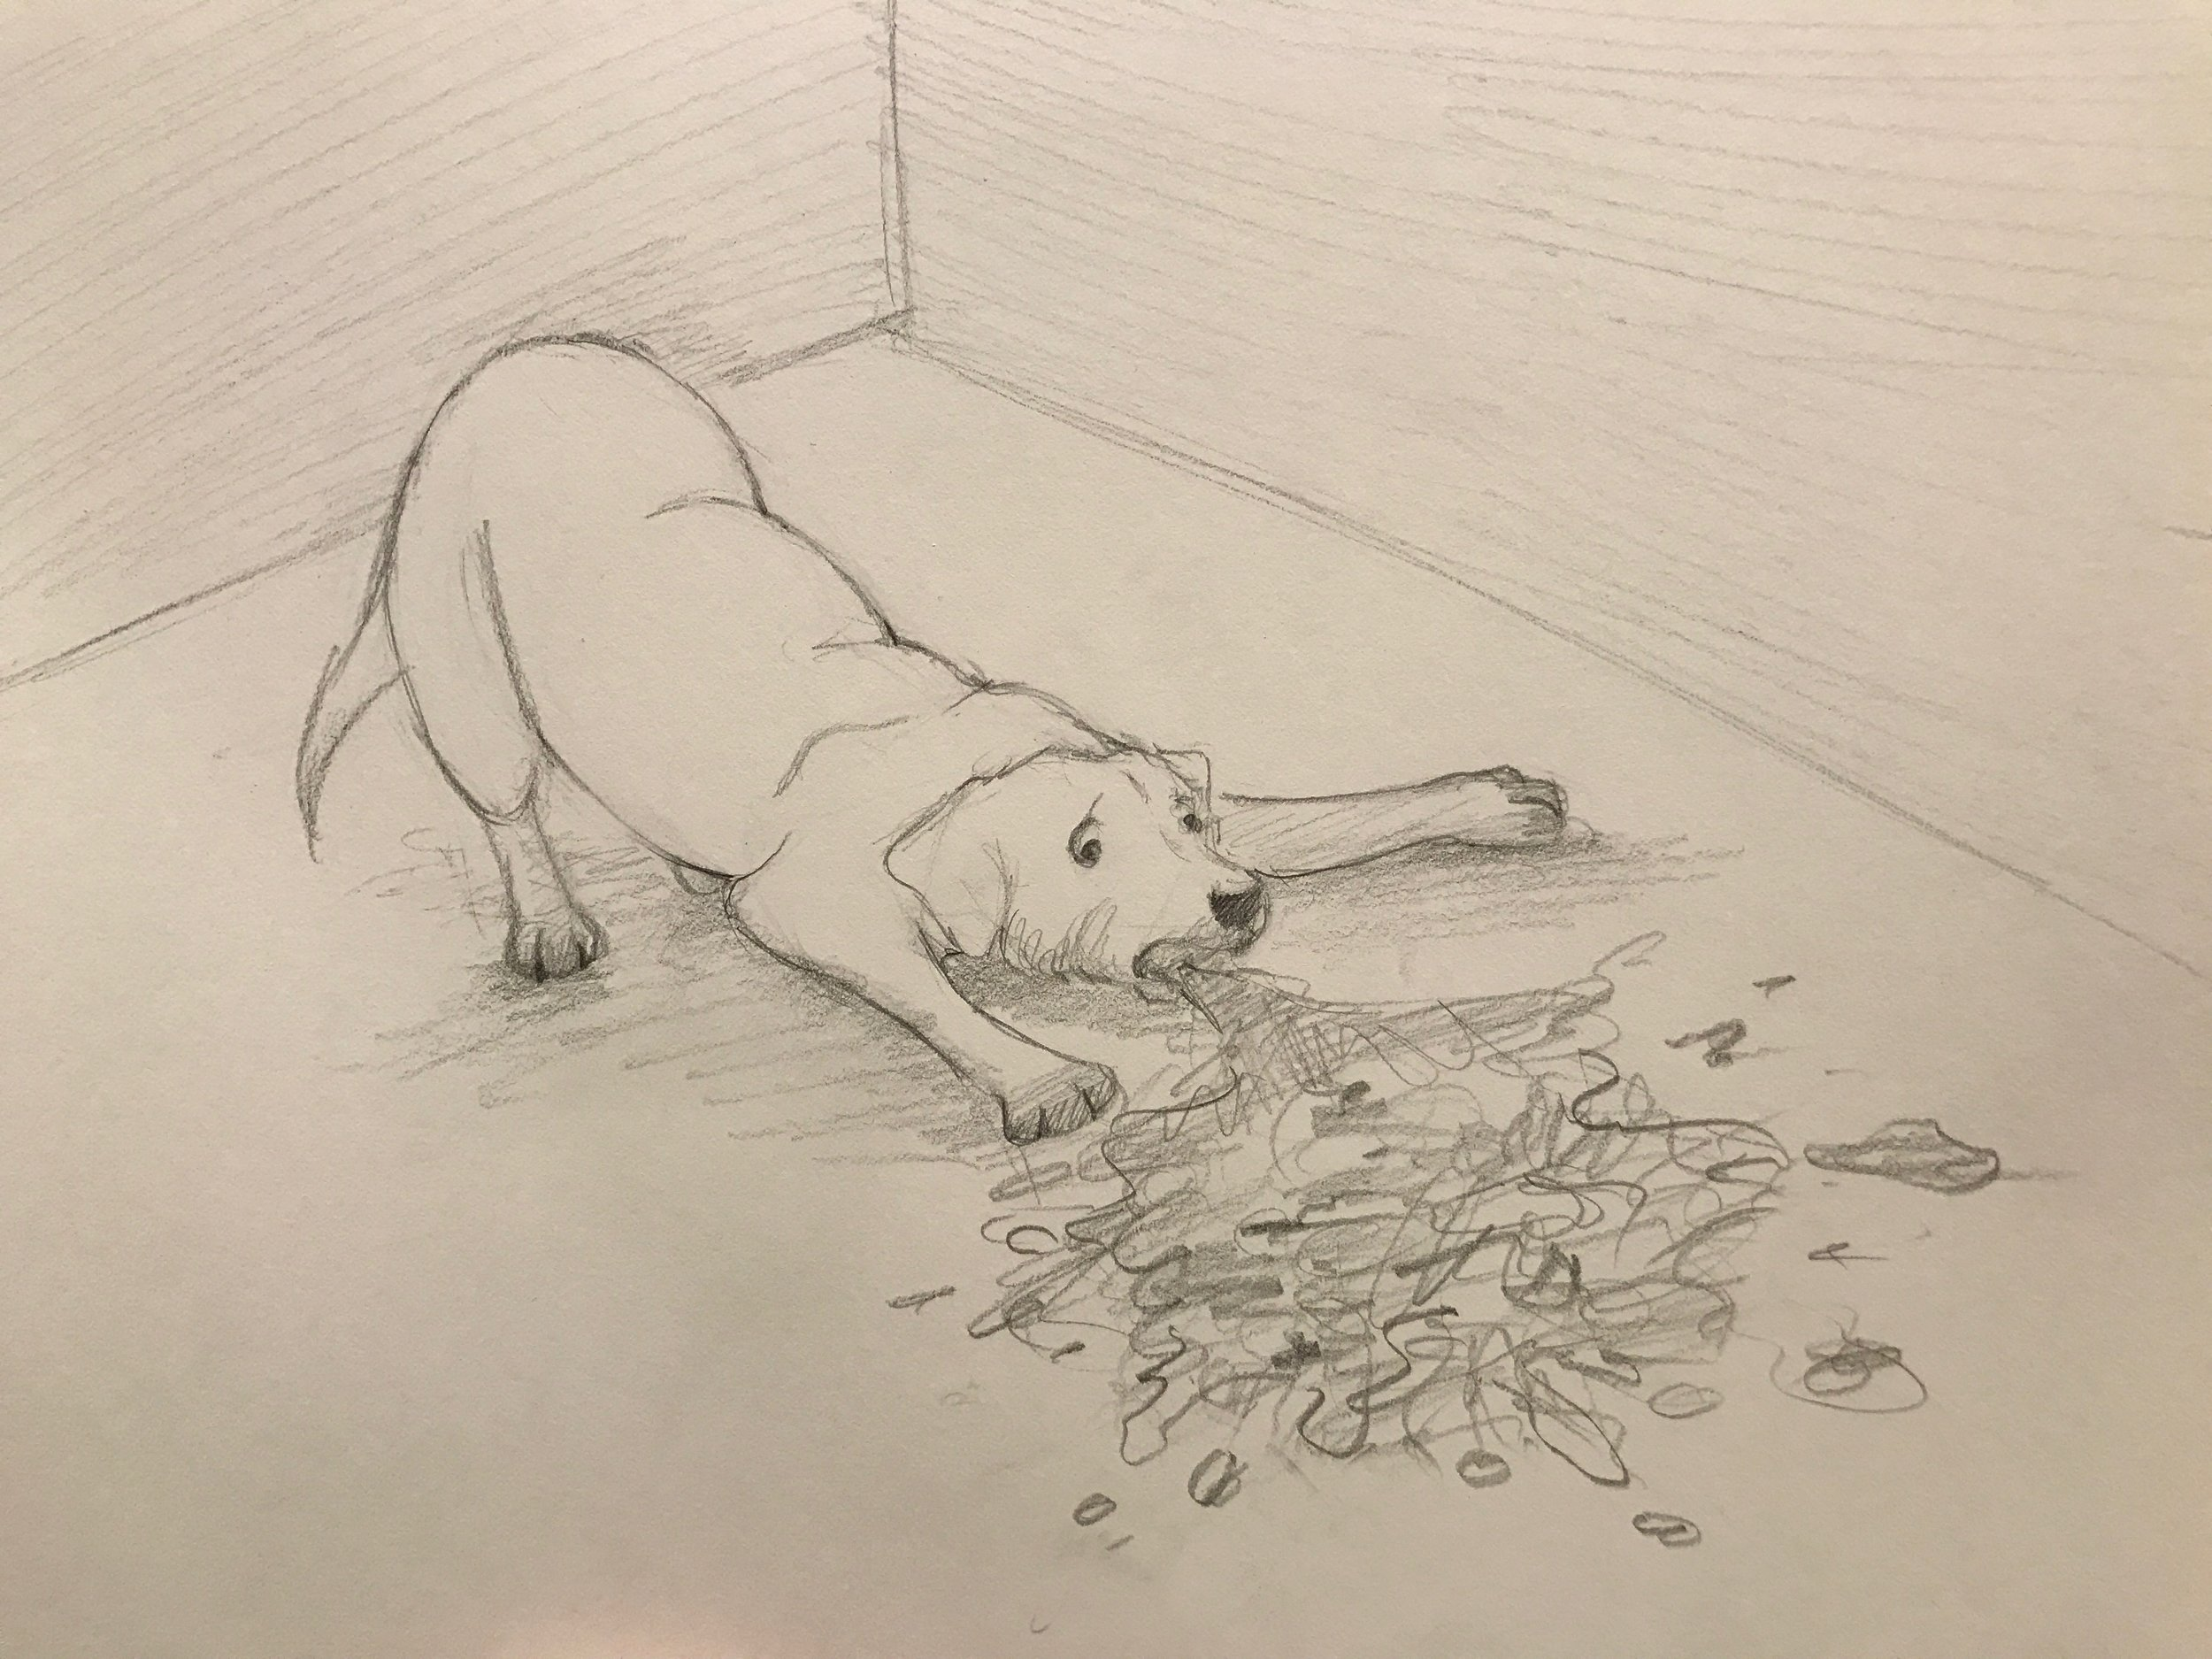 Christine's rendition of a dog barfing. Freakin' Baller!!!!